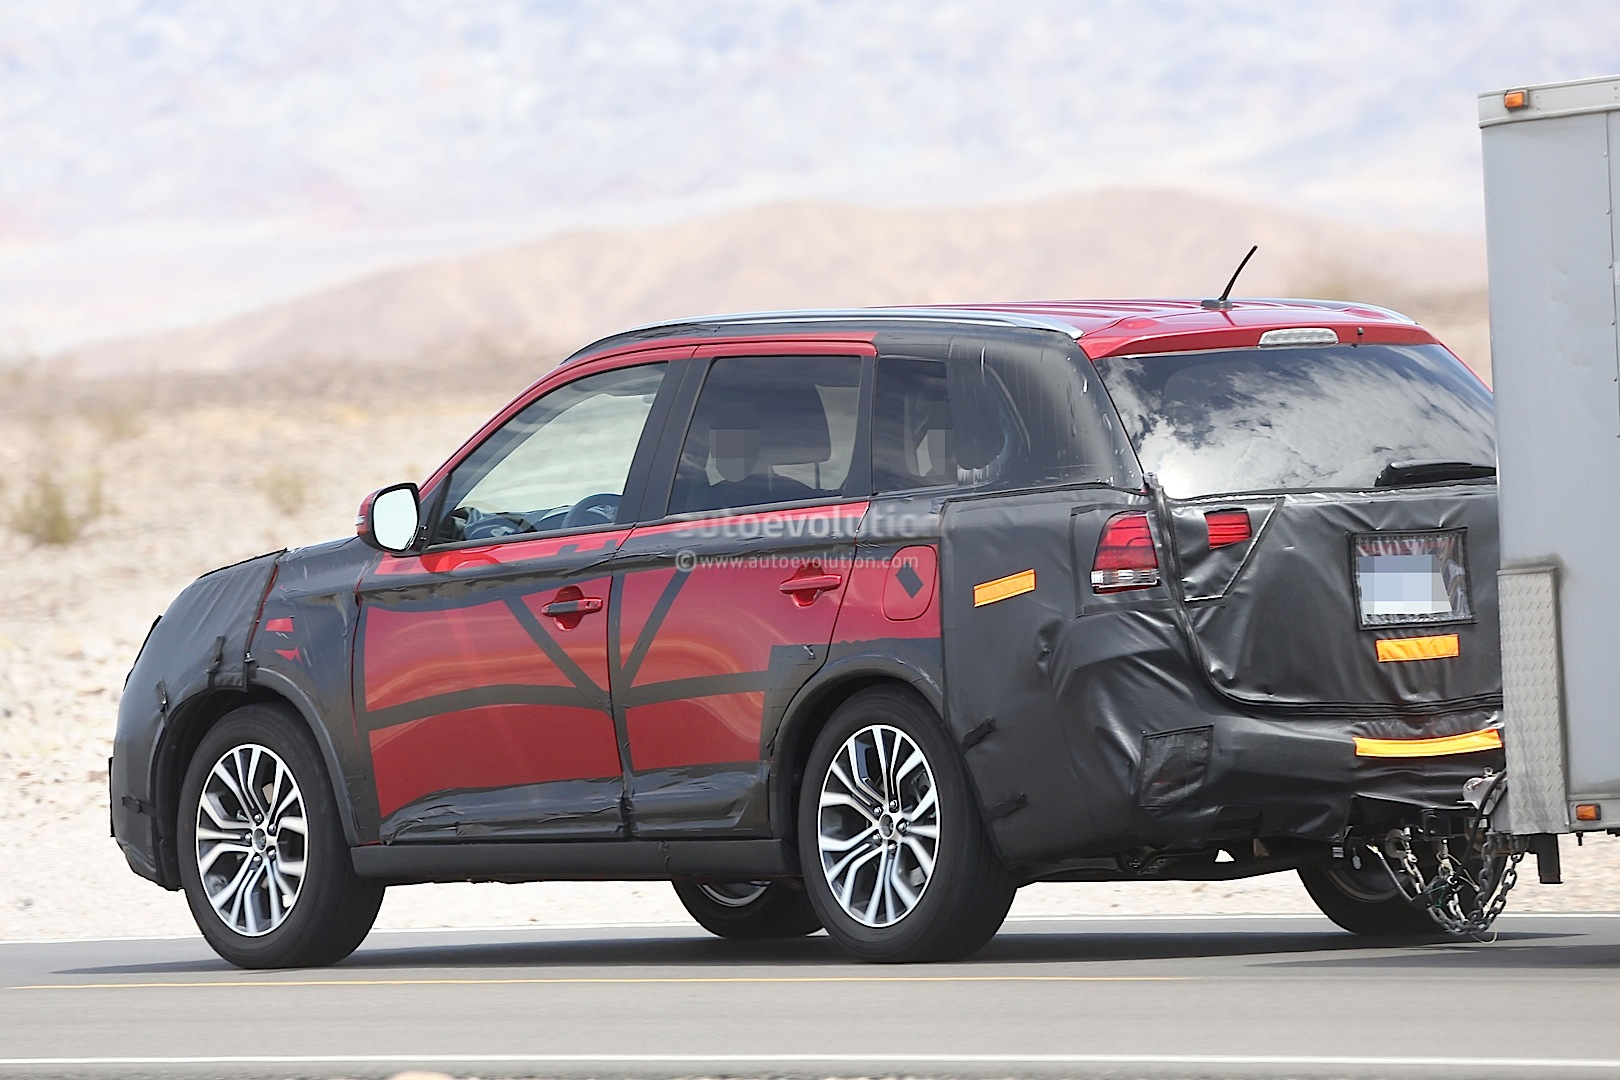 2015 mitsubishi outlander facelift spied towing a trailer autoevolution. Black Bedroom Furniture Sets. Home Design Ideas